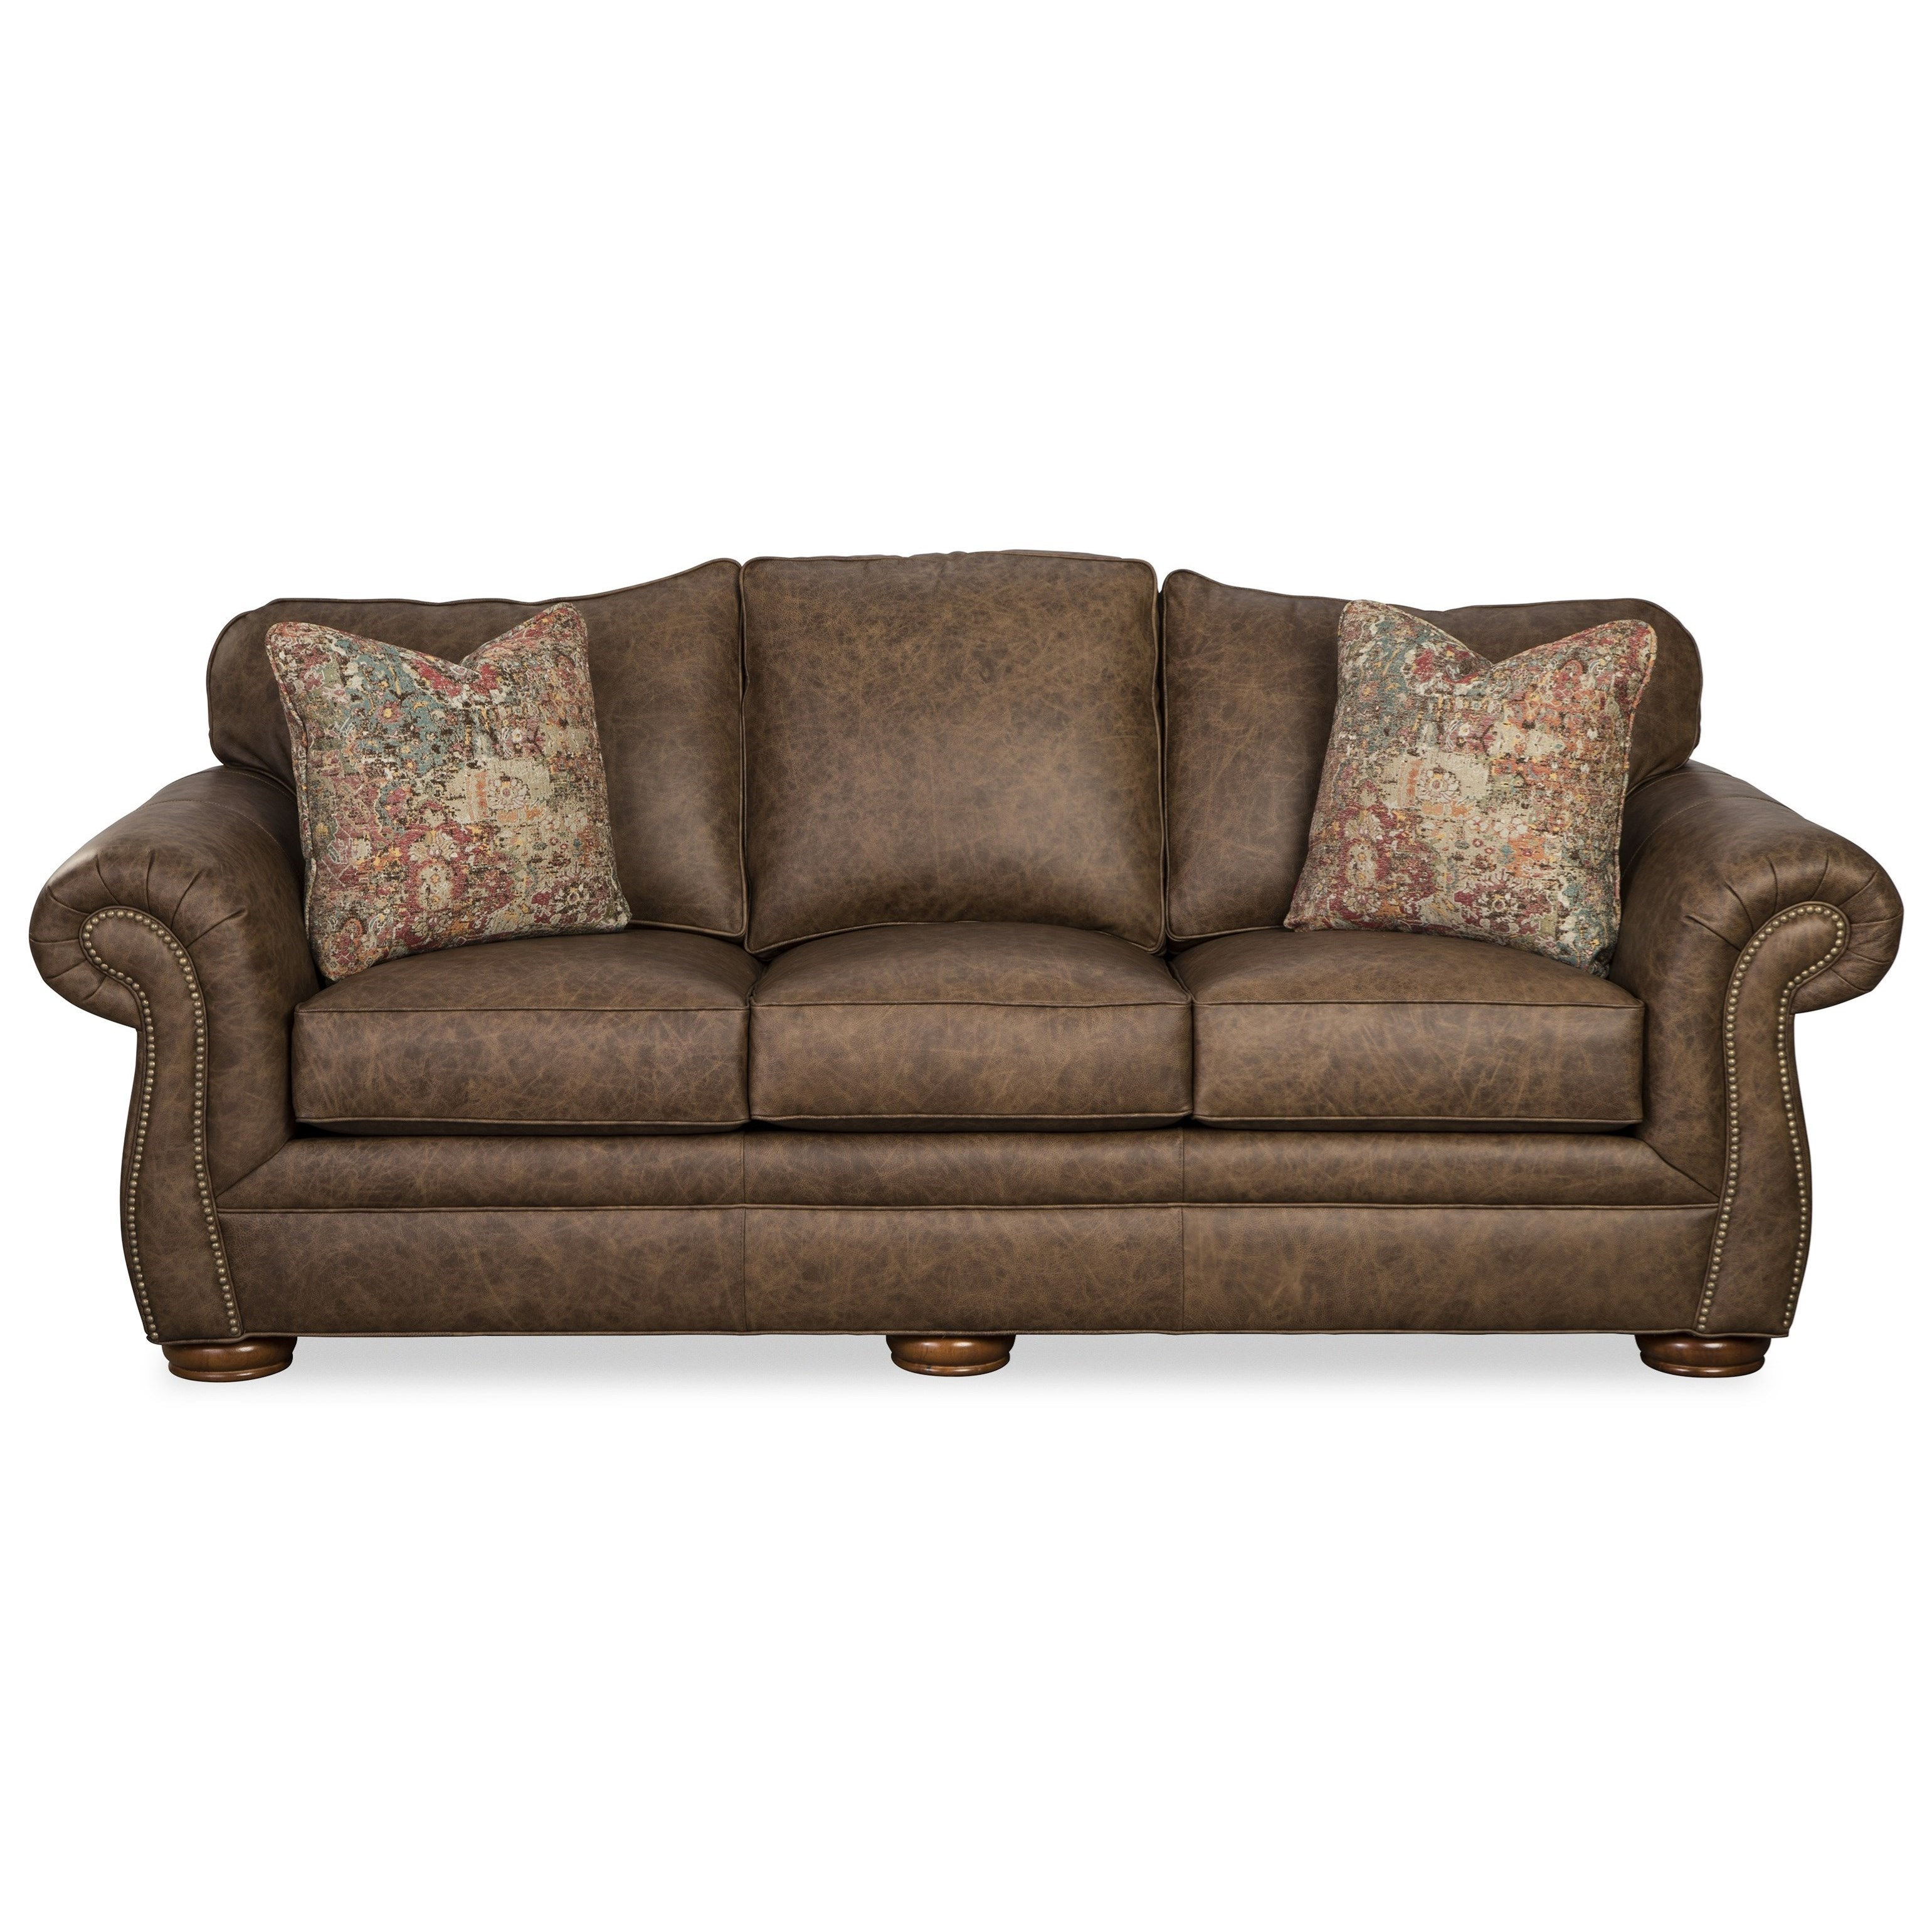 Traditional Leather Camelback Sofa with Nailhead Studs and ...